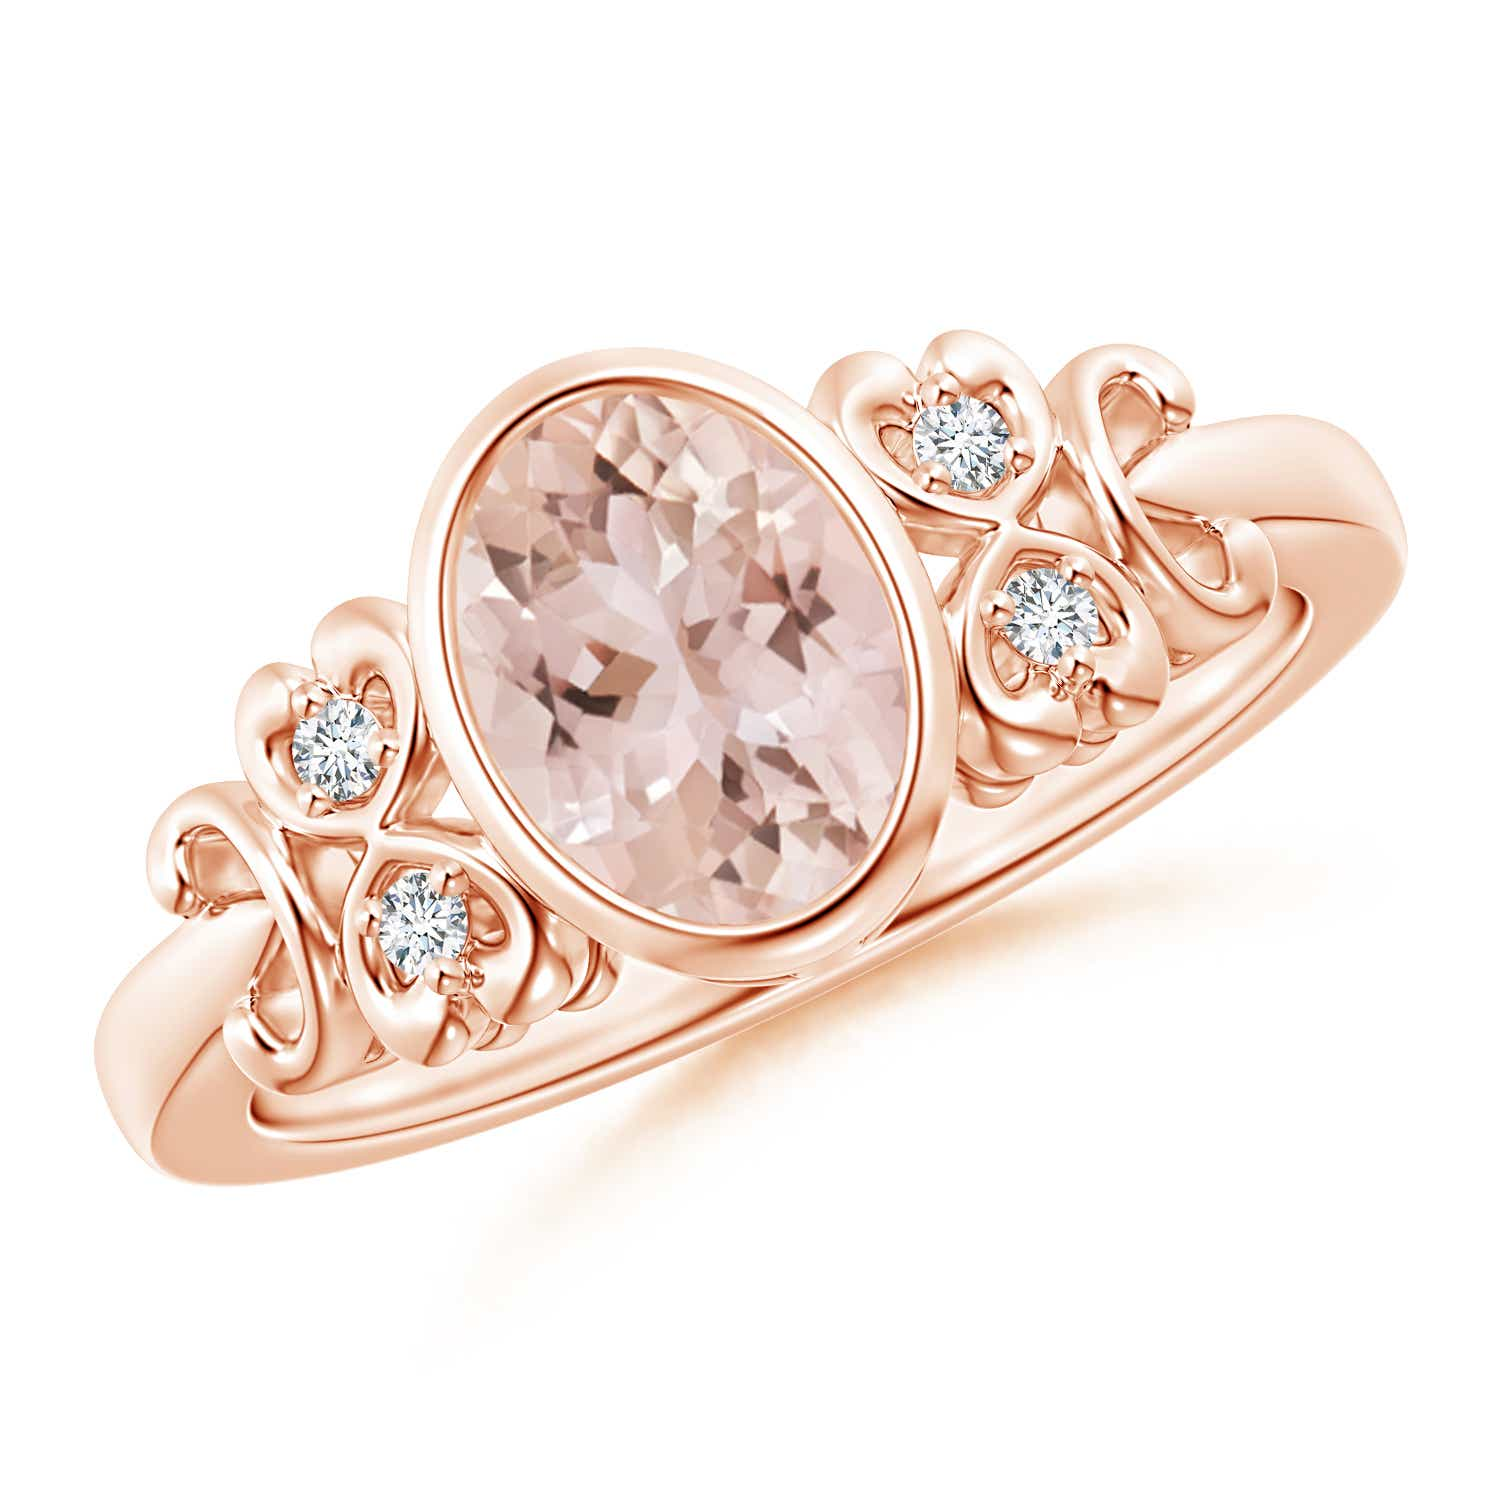 Vintage Oval Morganite Bezel Ring with Diamond Accents - Angara.com